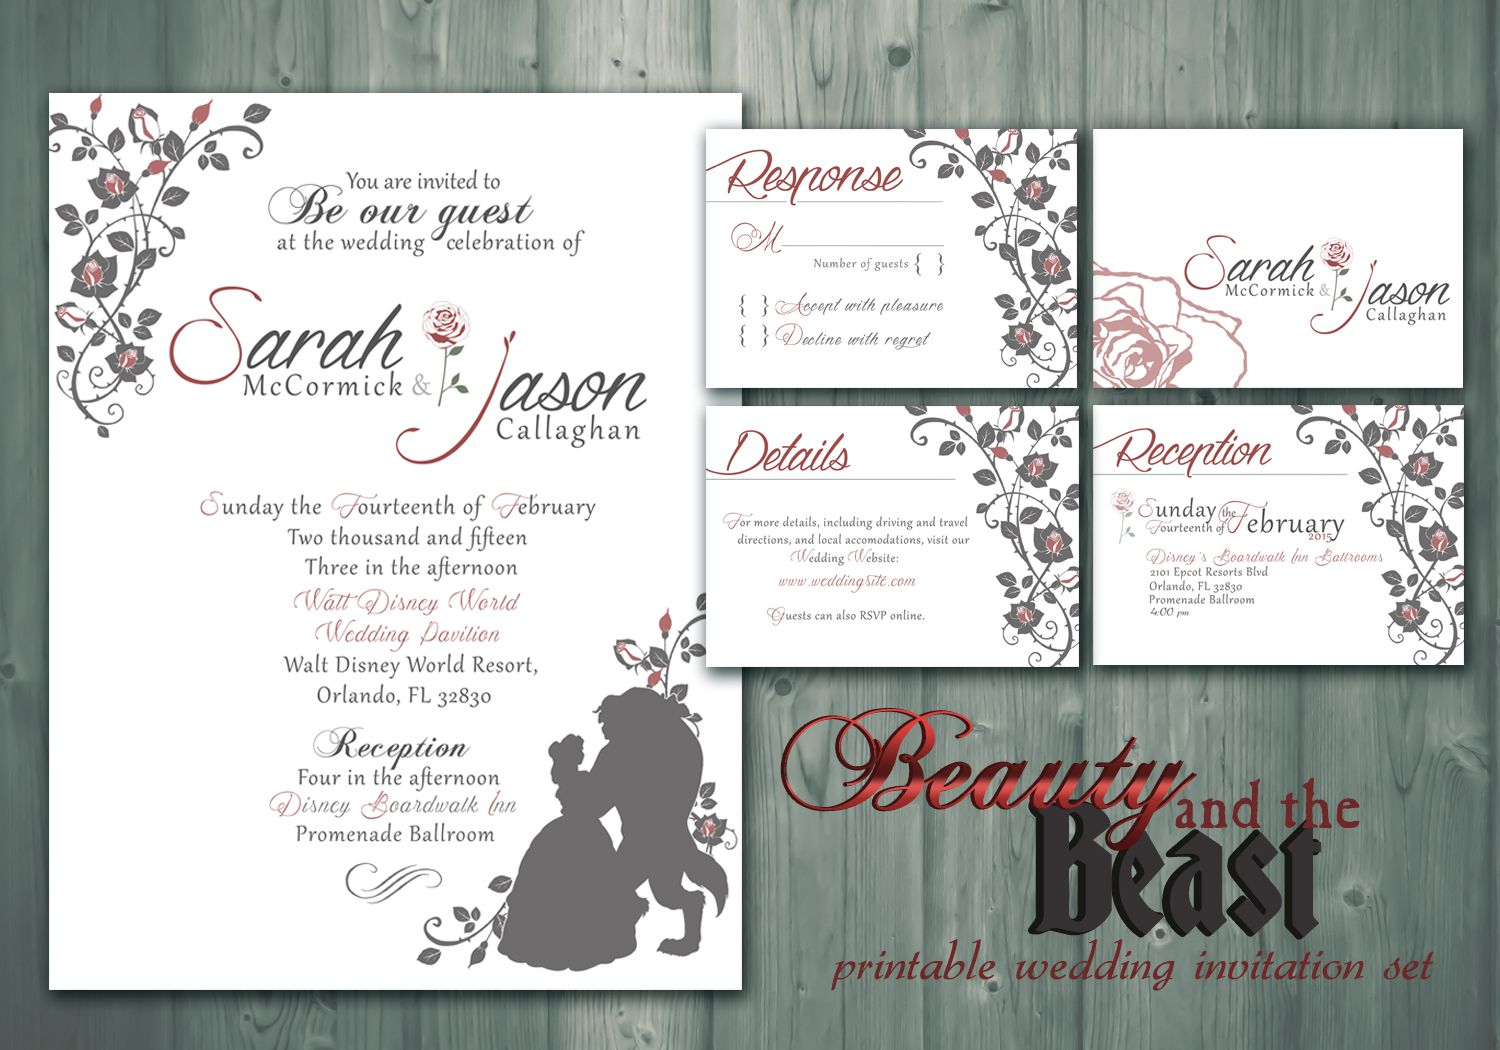 Beauty and the Beast -- Printable Wedding Invitation / RSVP / Detail ...